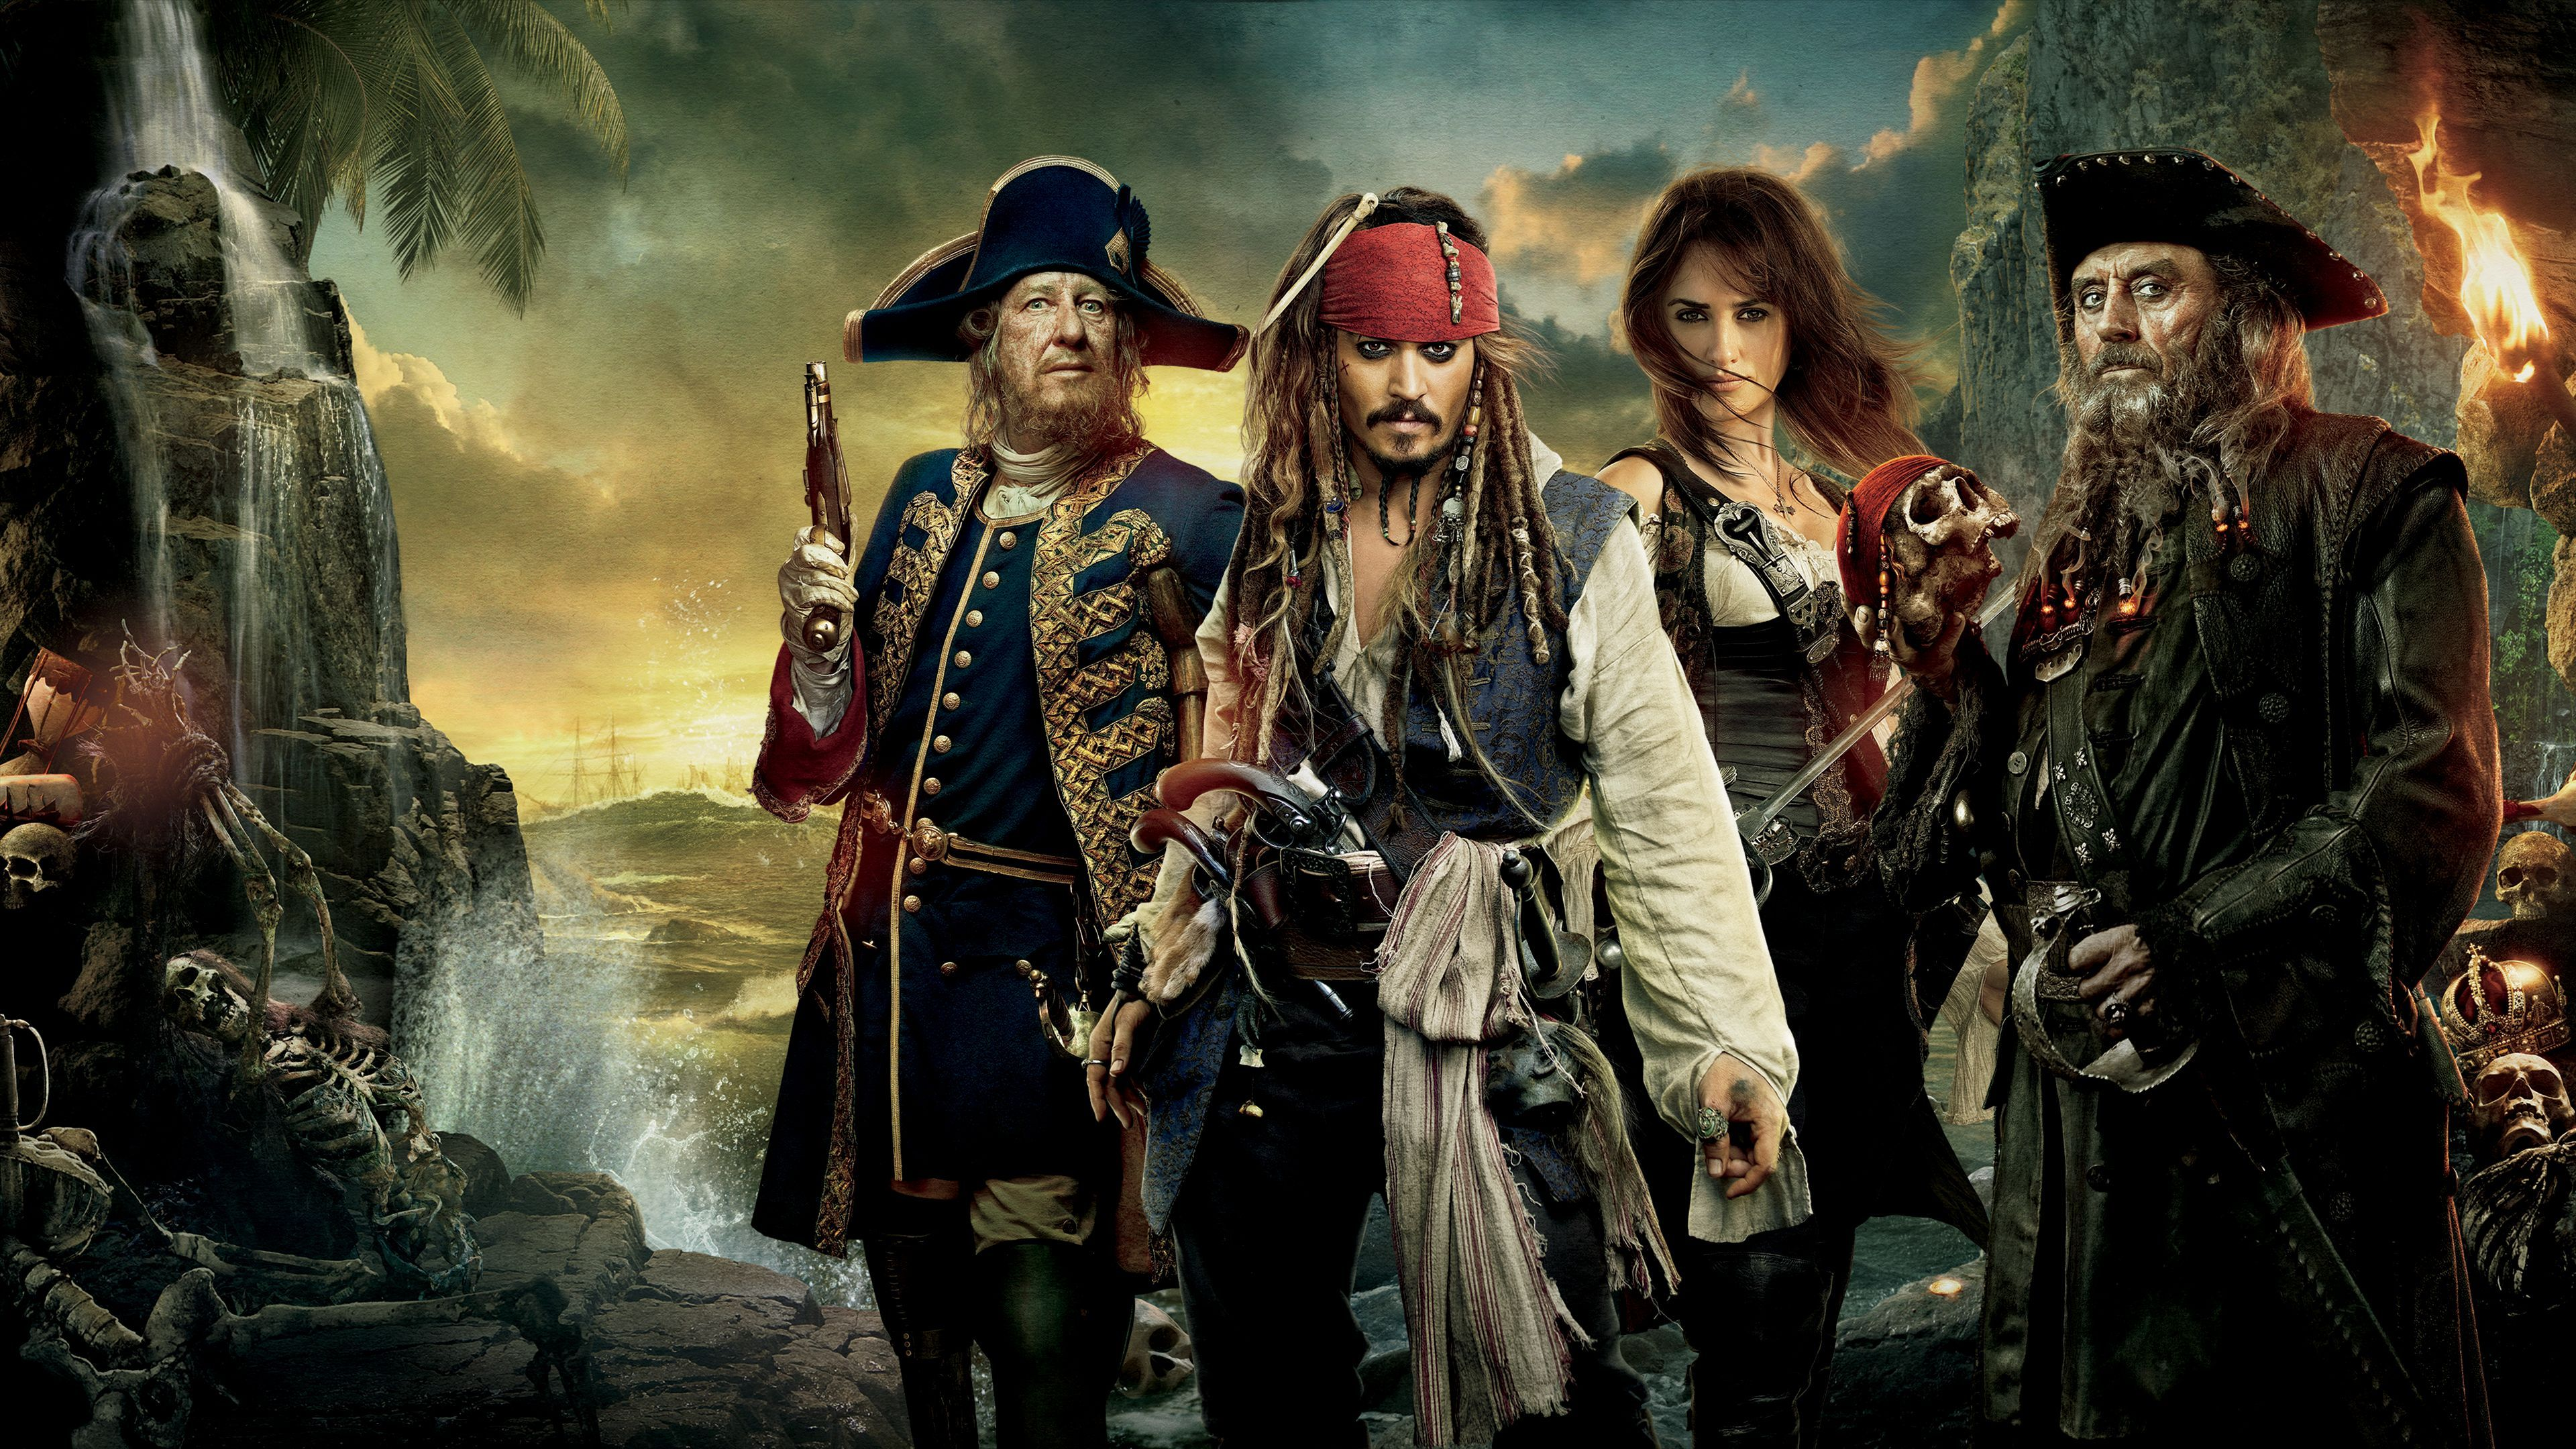 Pirates of caribbean hd movie, free yong porn videos